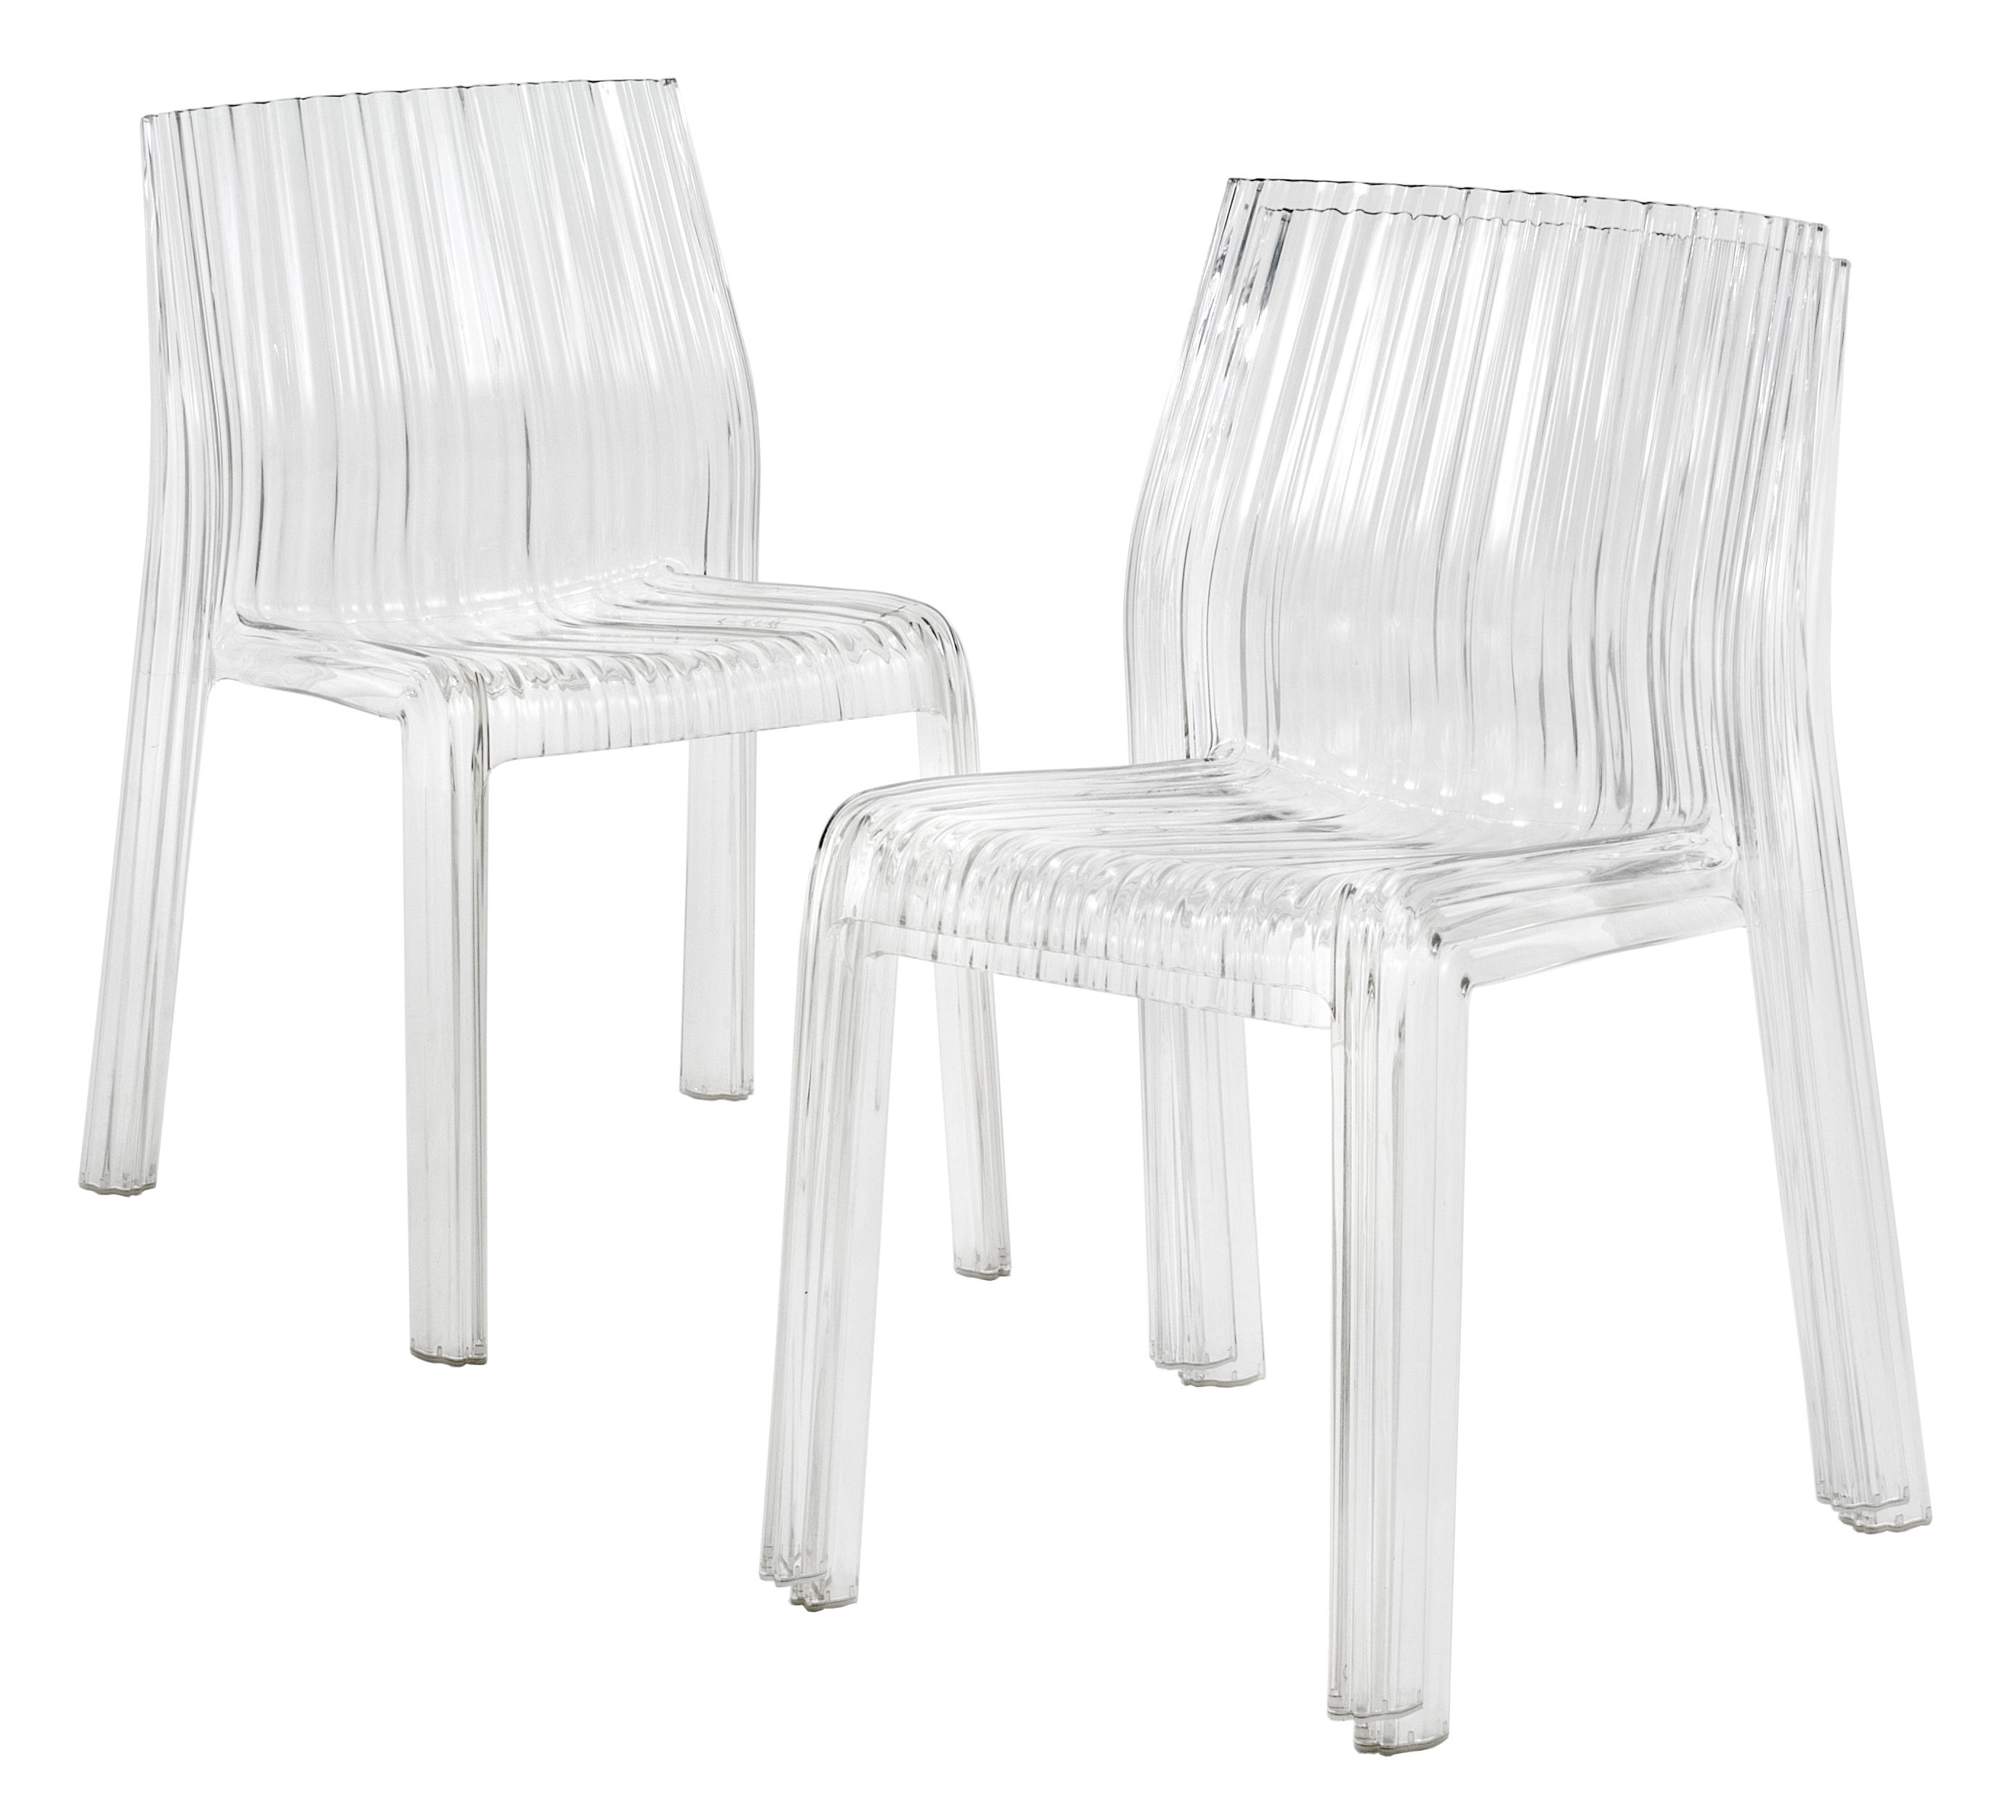 chaise empilable frilly kartell cristal l 47 x h 78 made in design. Black Bedroom Furniture Sets. Home Design Ideas